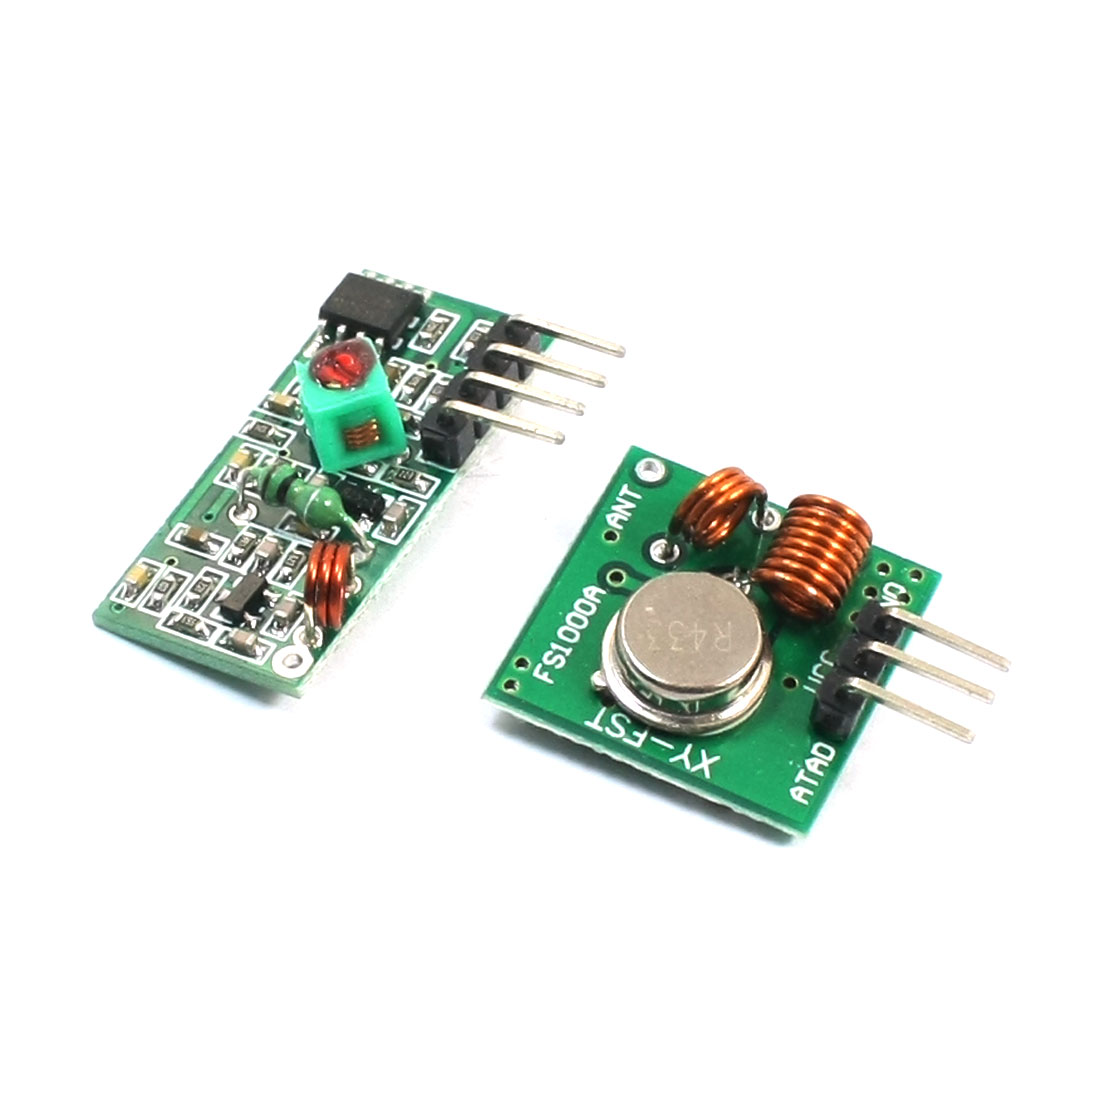 433MHz Wireless Communication Transmitter Receiver Module Link Kit